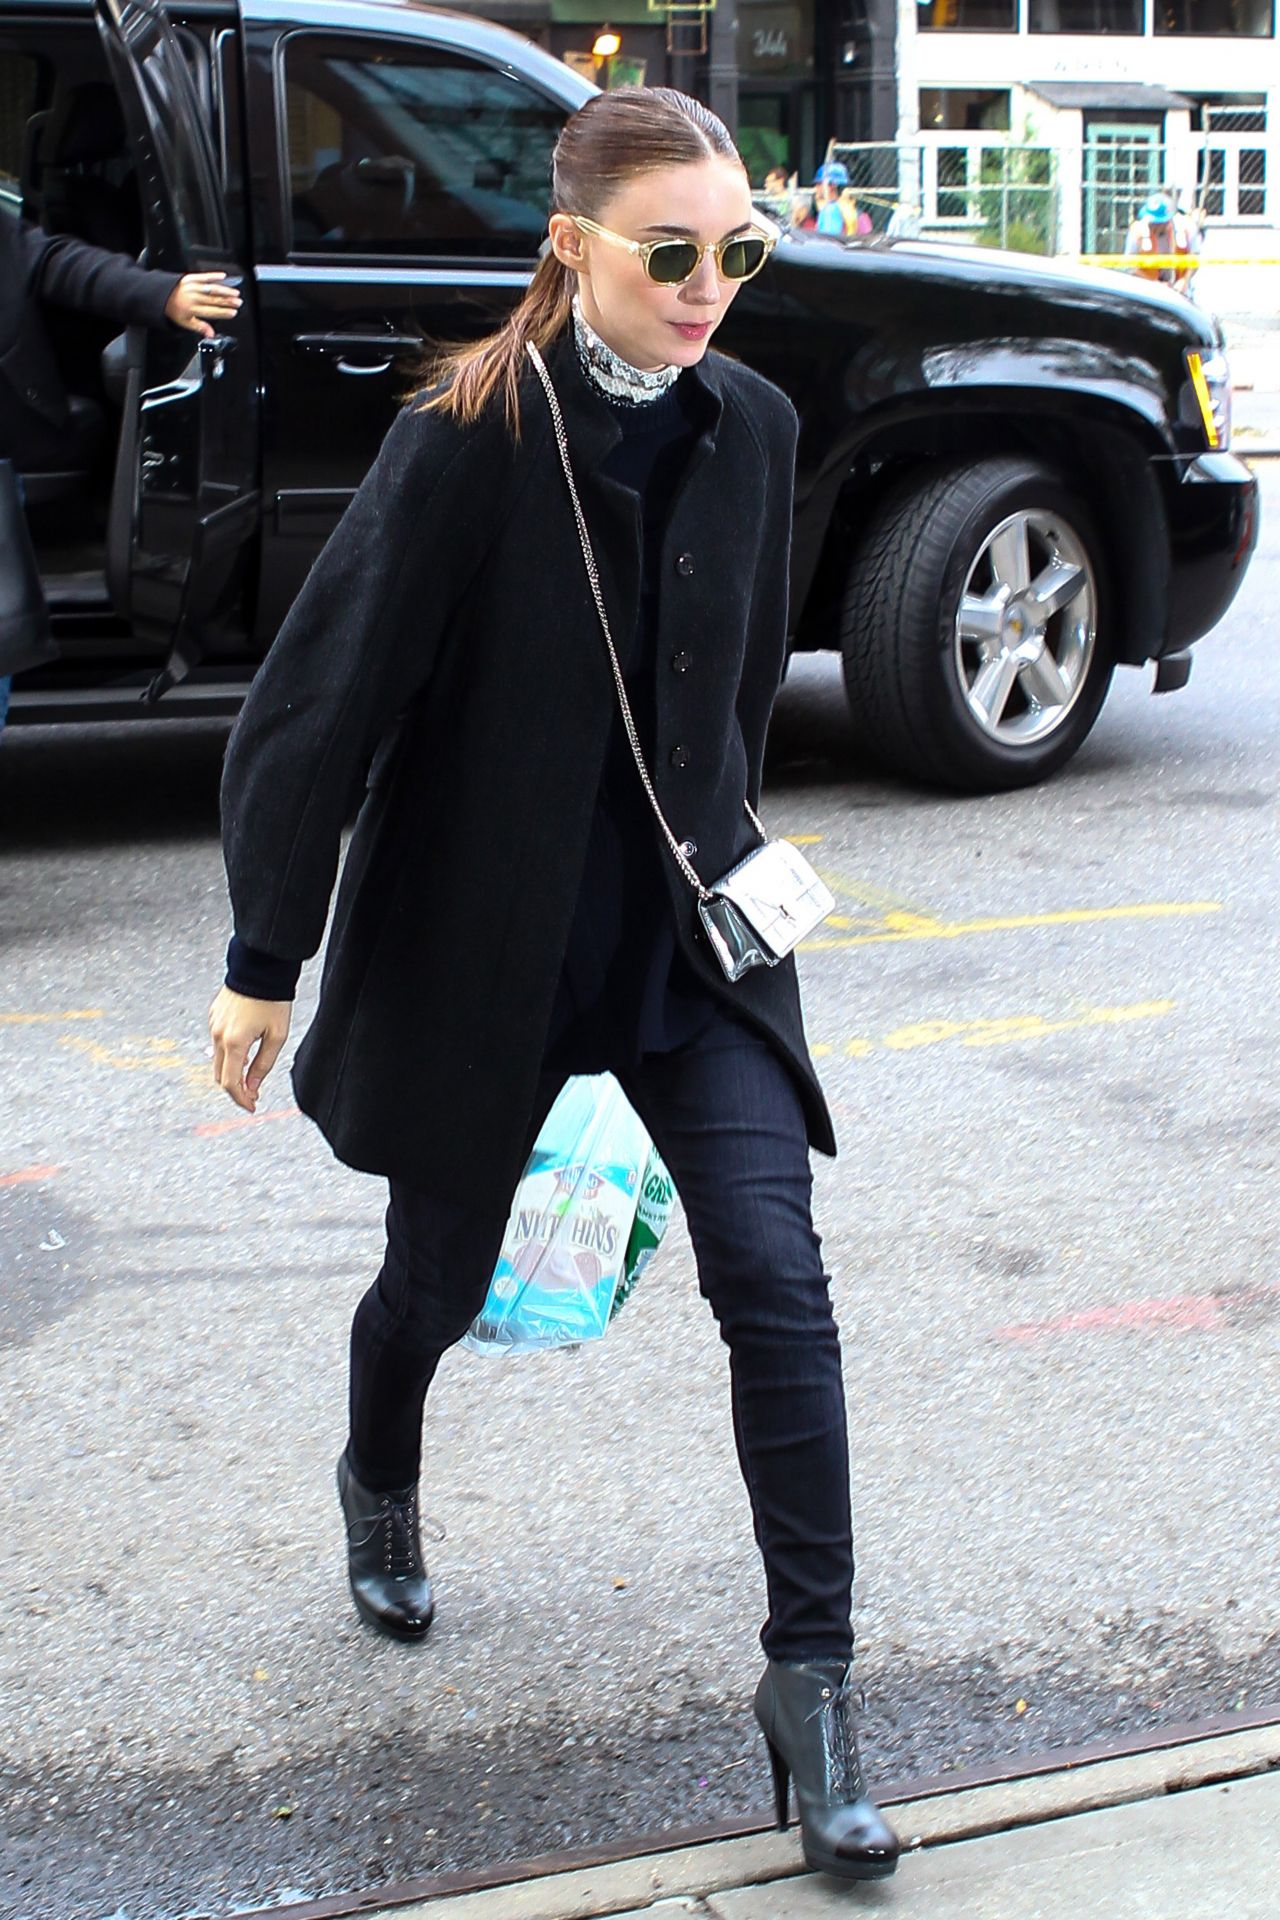 rooney-mara-autumn-style-out-in-new-york-city-october-2015_4